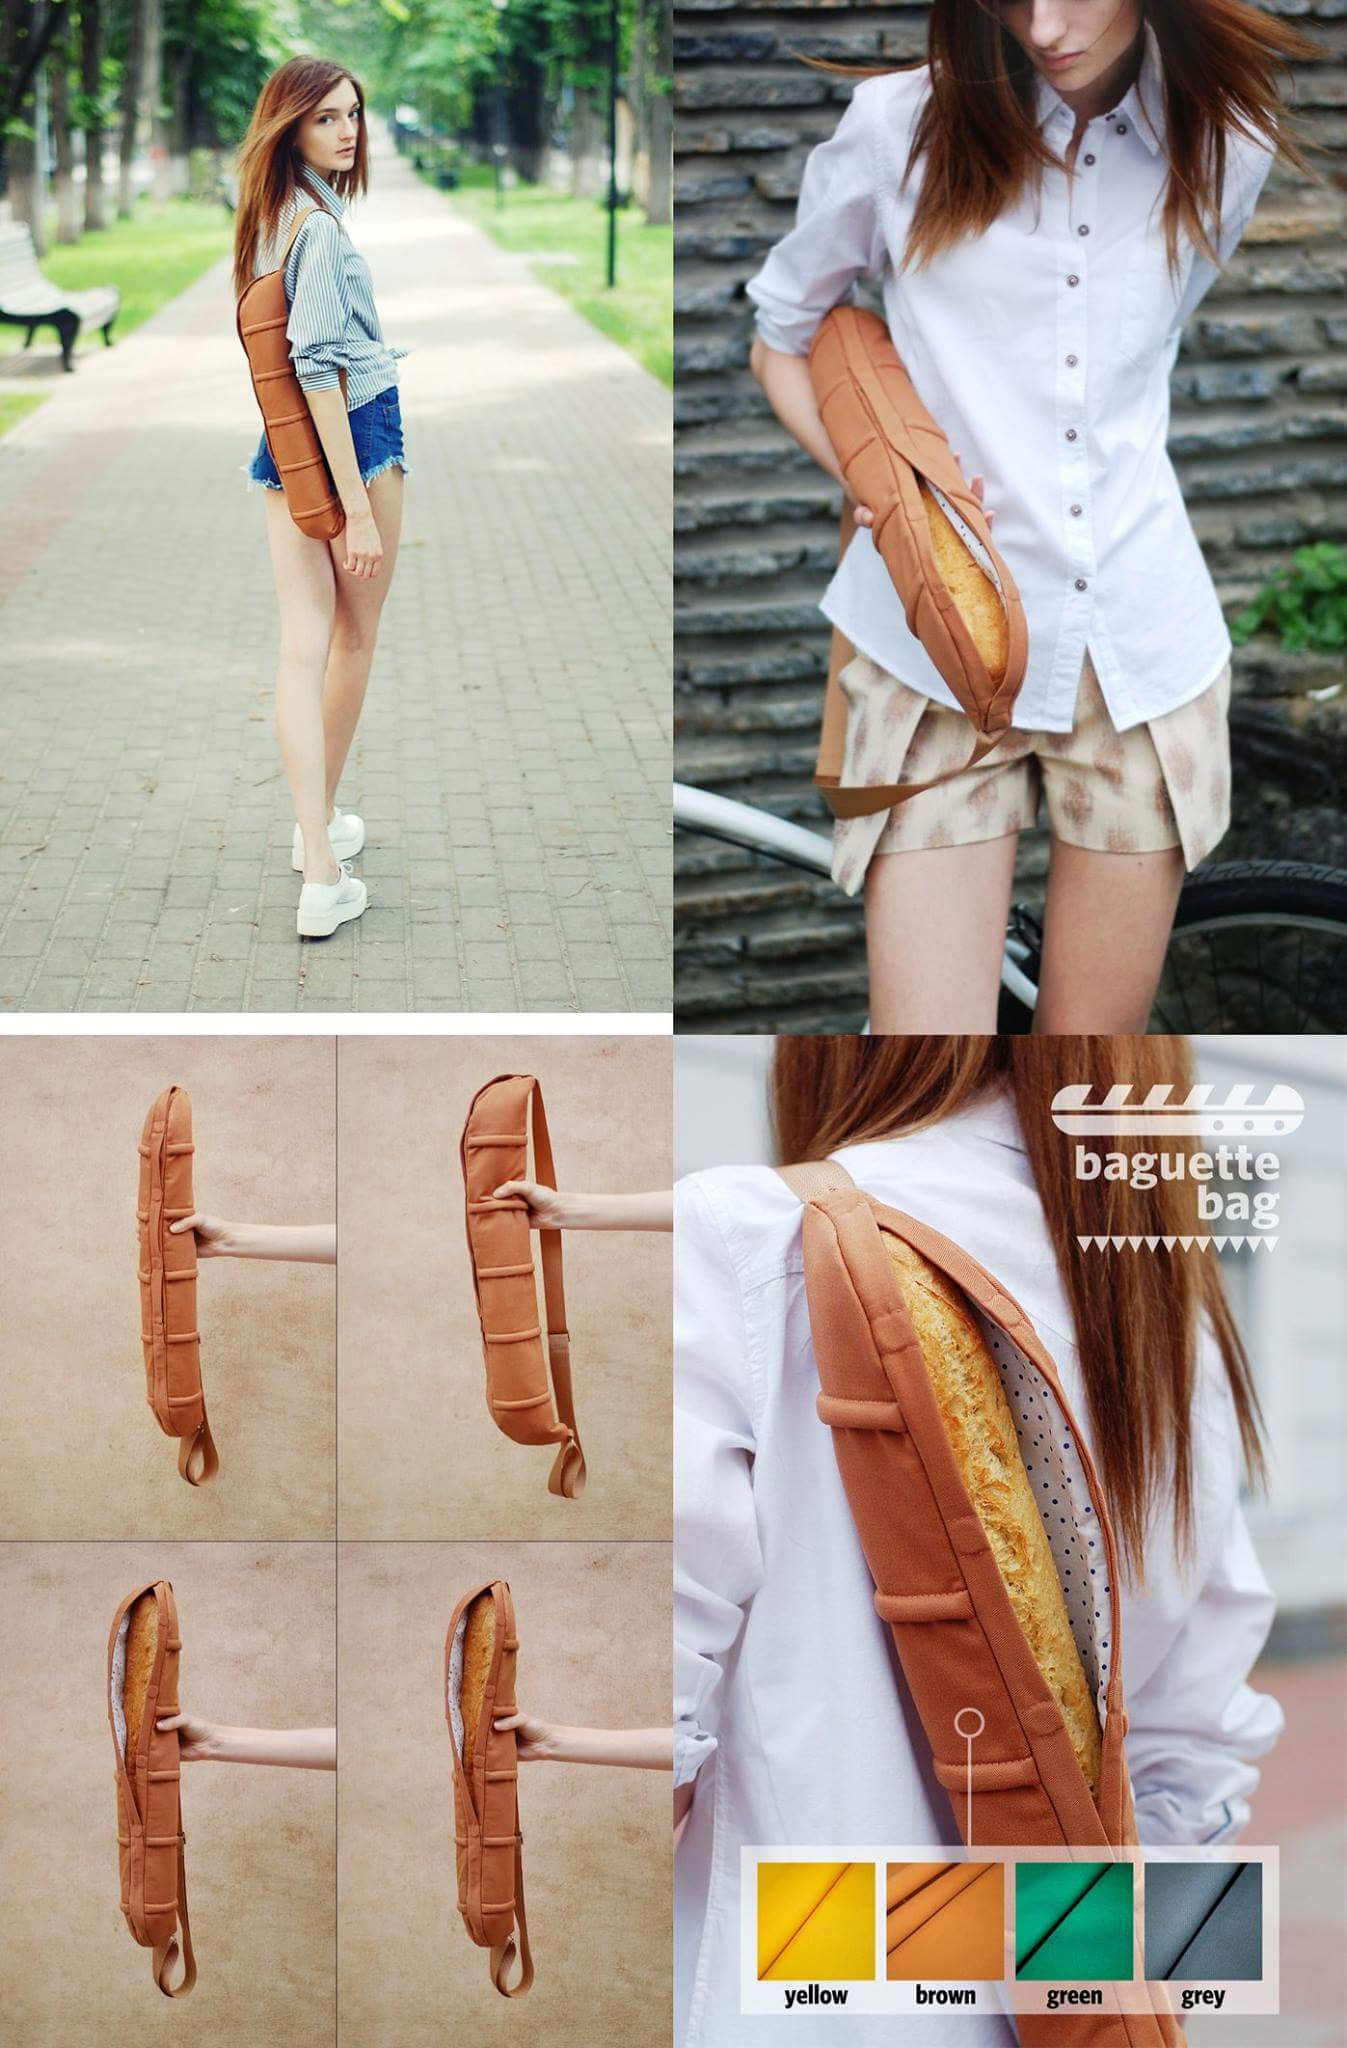 Must have fashion accessory for bread lovers.